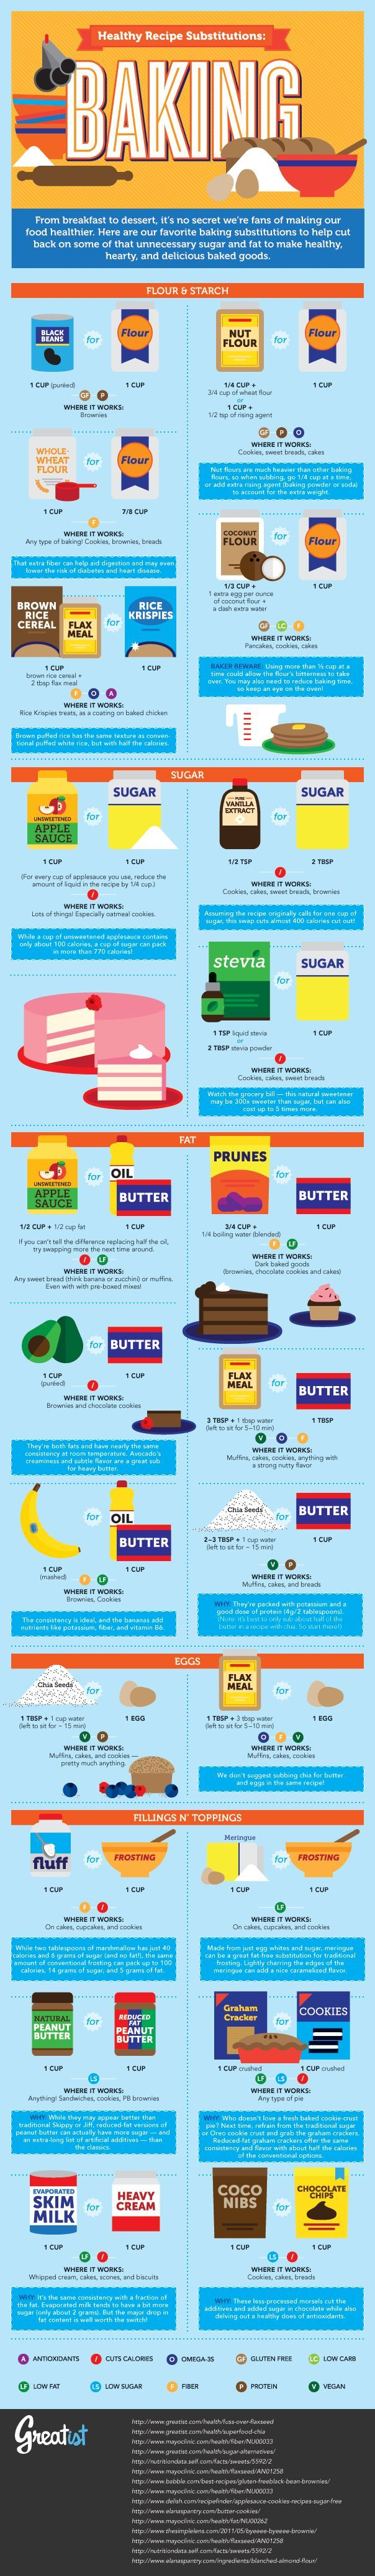 The Ultimate Guide to Healthier Baking #tips #baking #diy